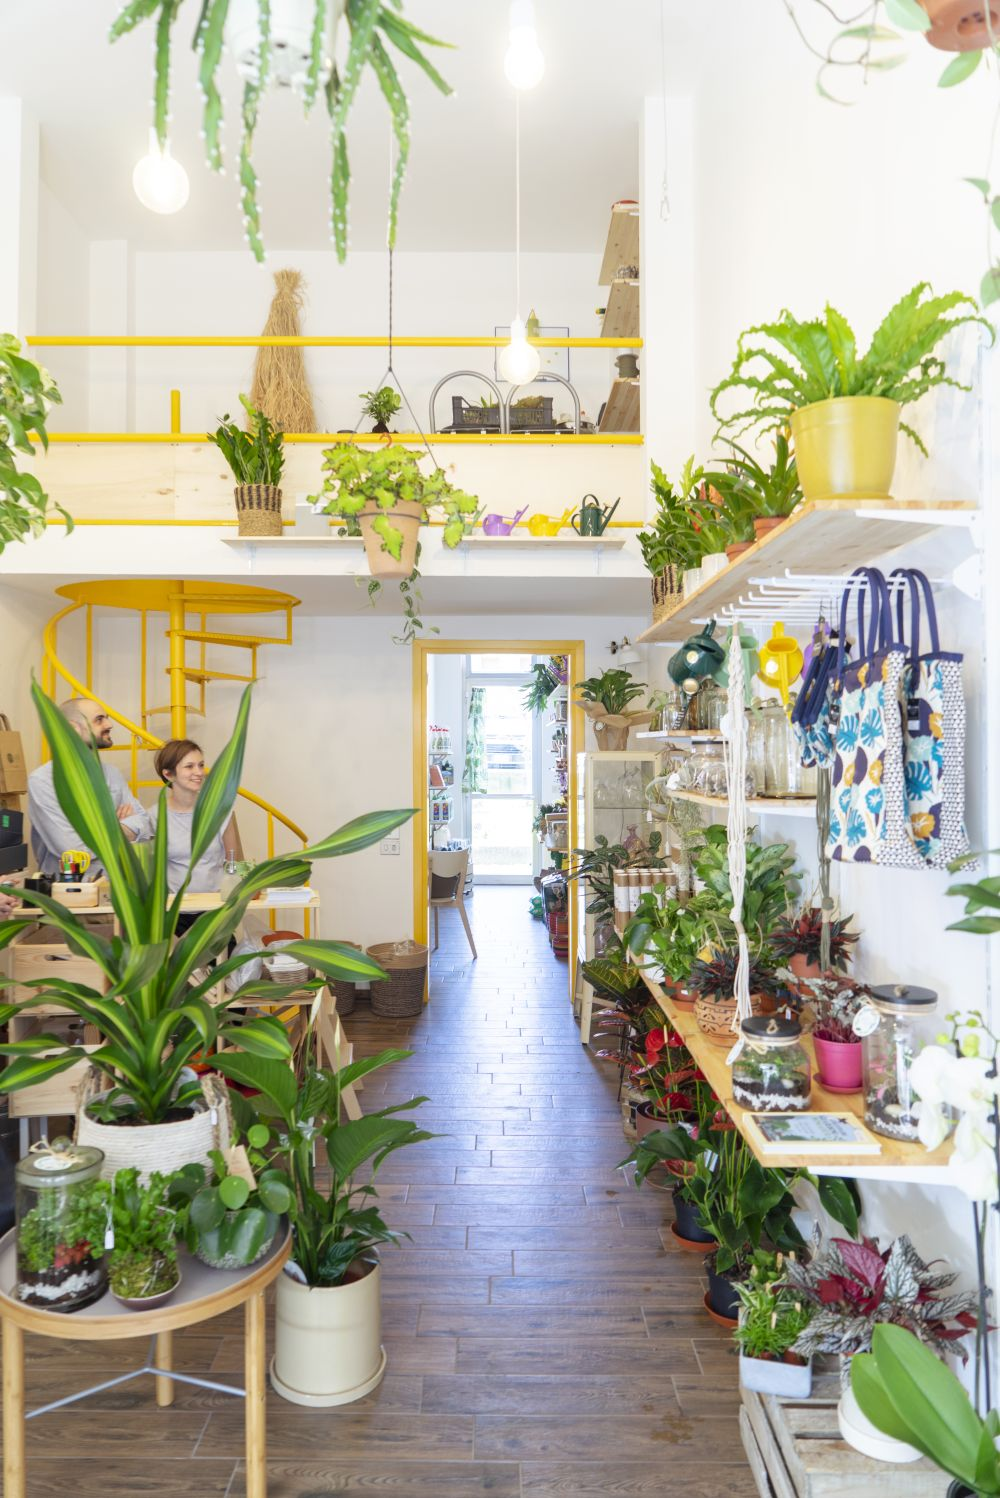 Urban Jungle Decorating Kitchen: Wild Milano Plant Shop In Milan